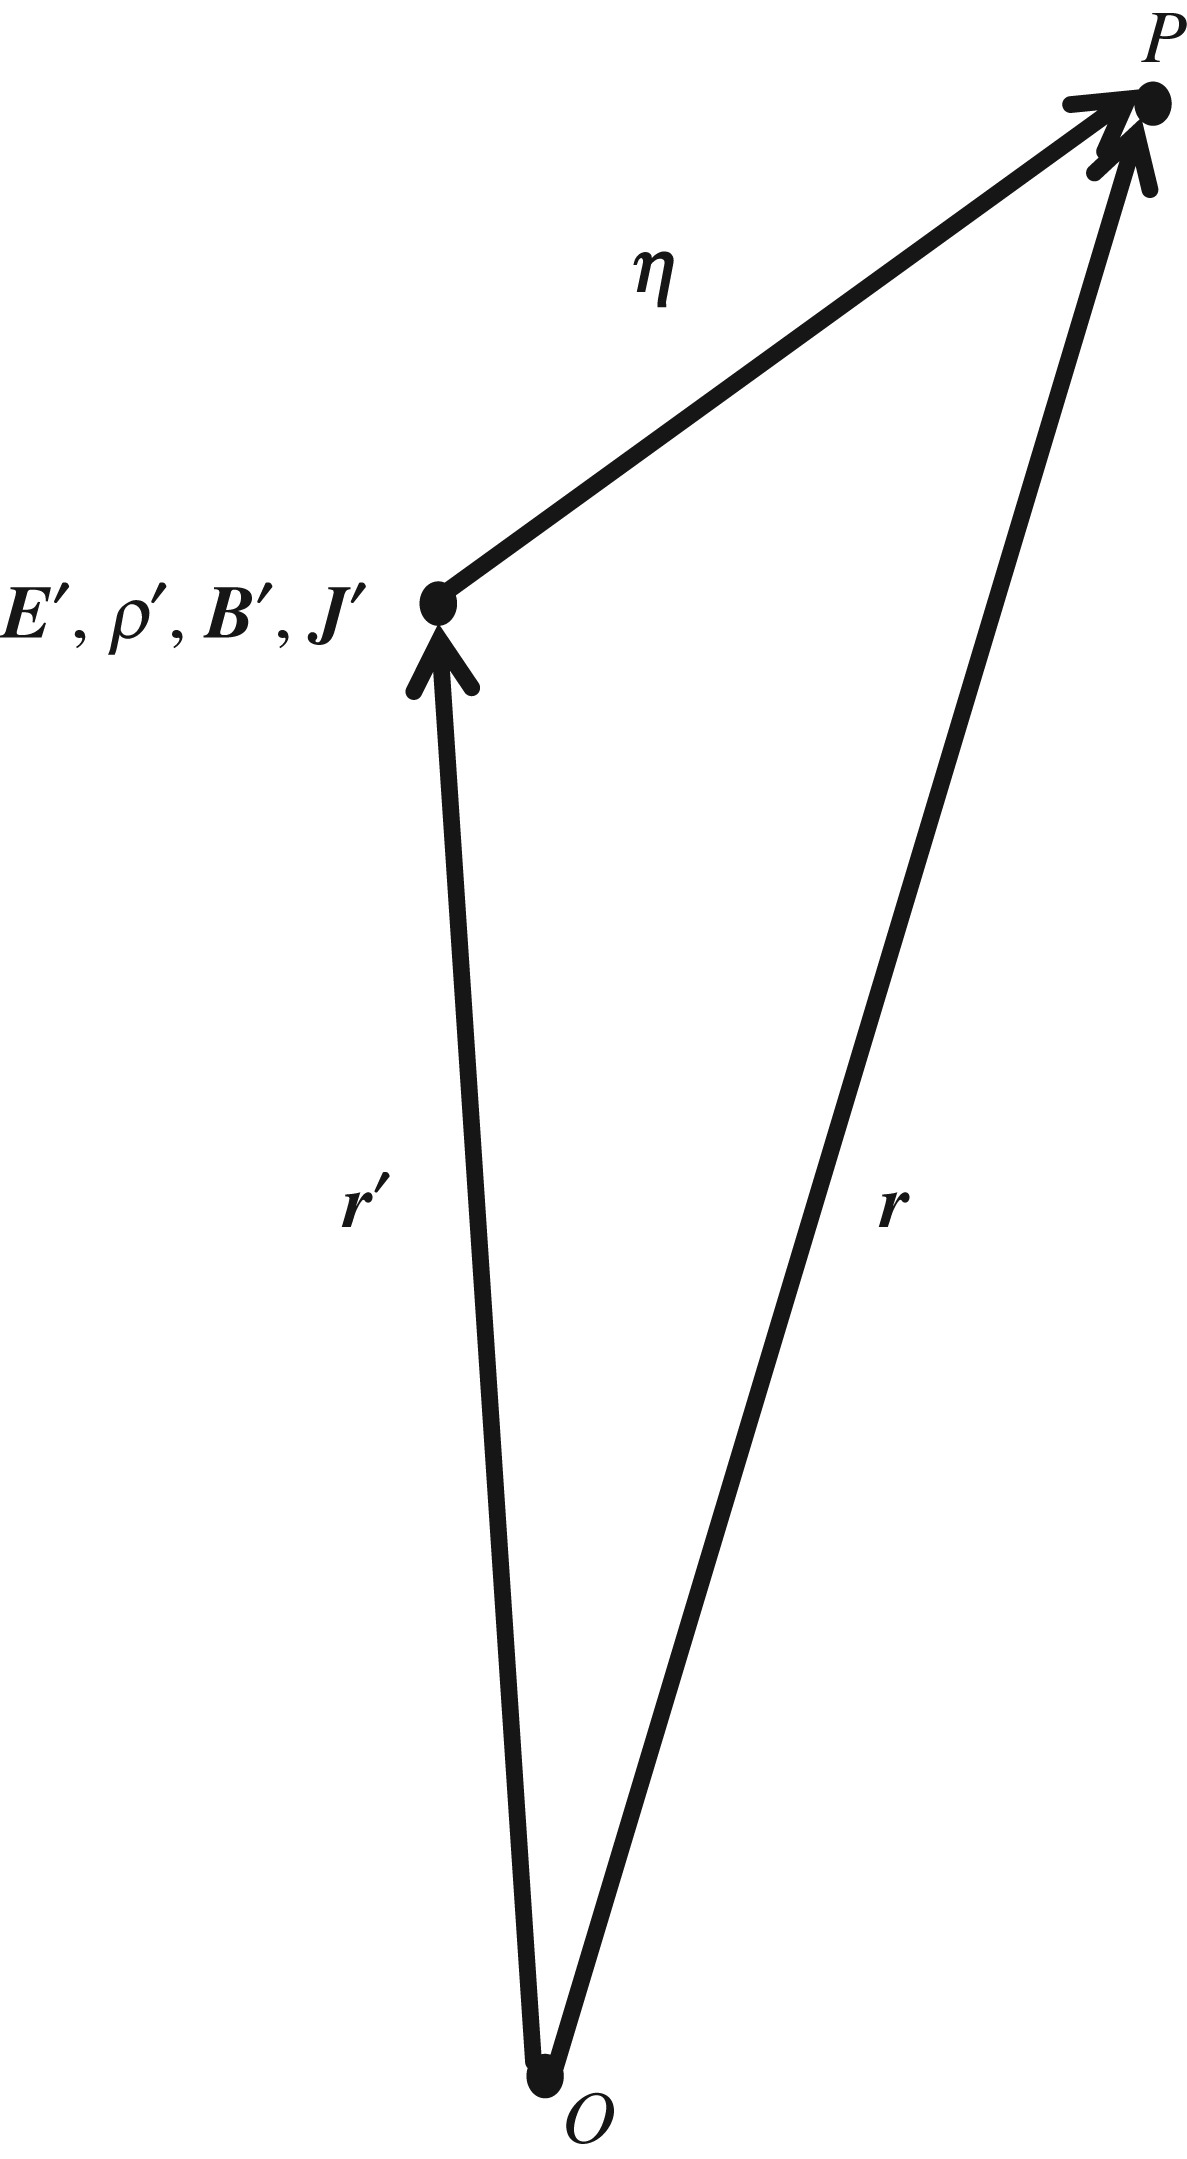 A derivation of Maxwell's equations using the Heaviside notation